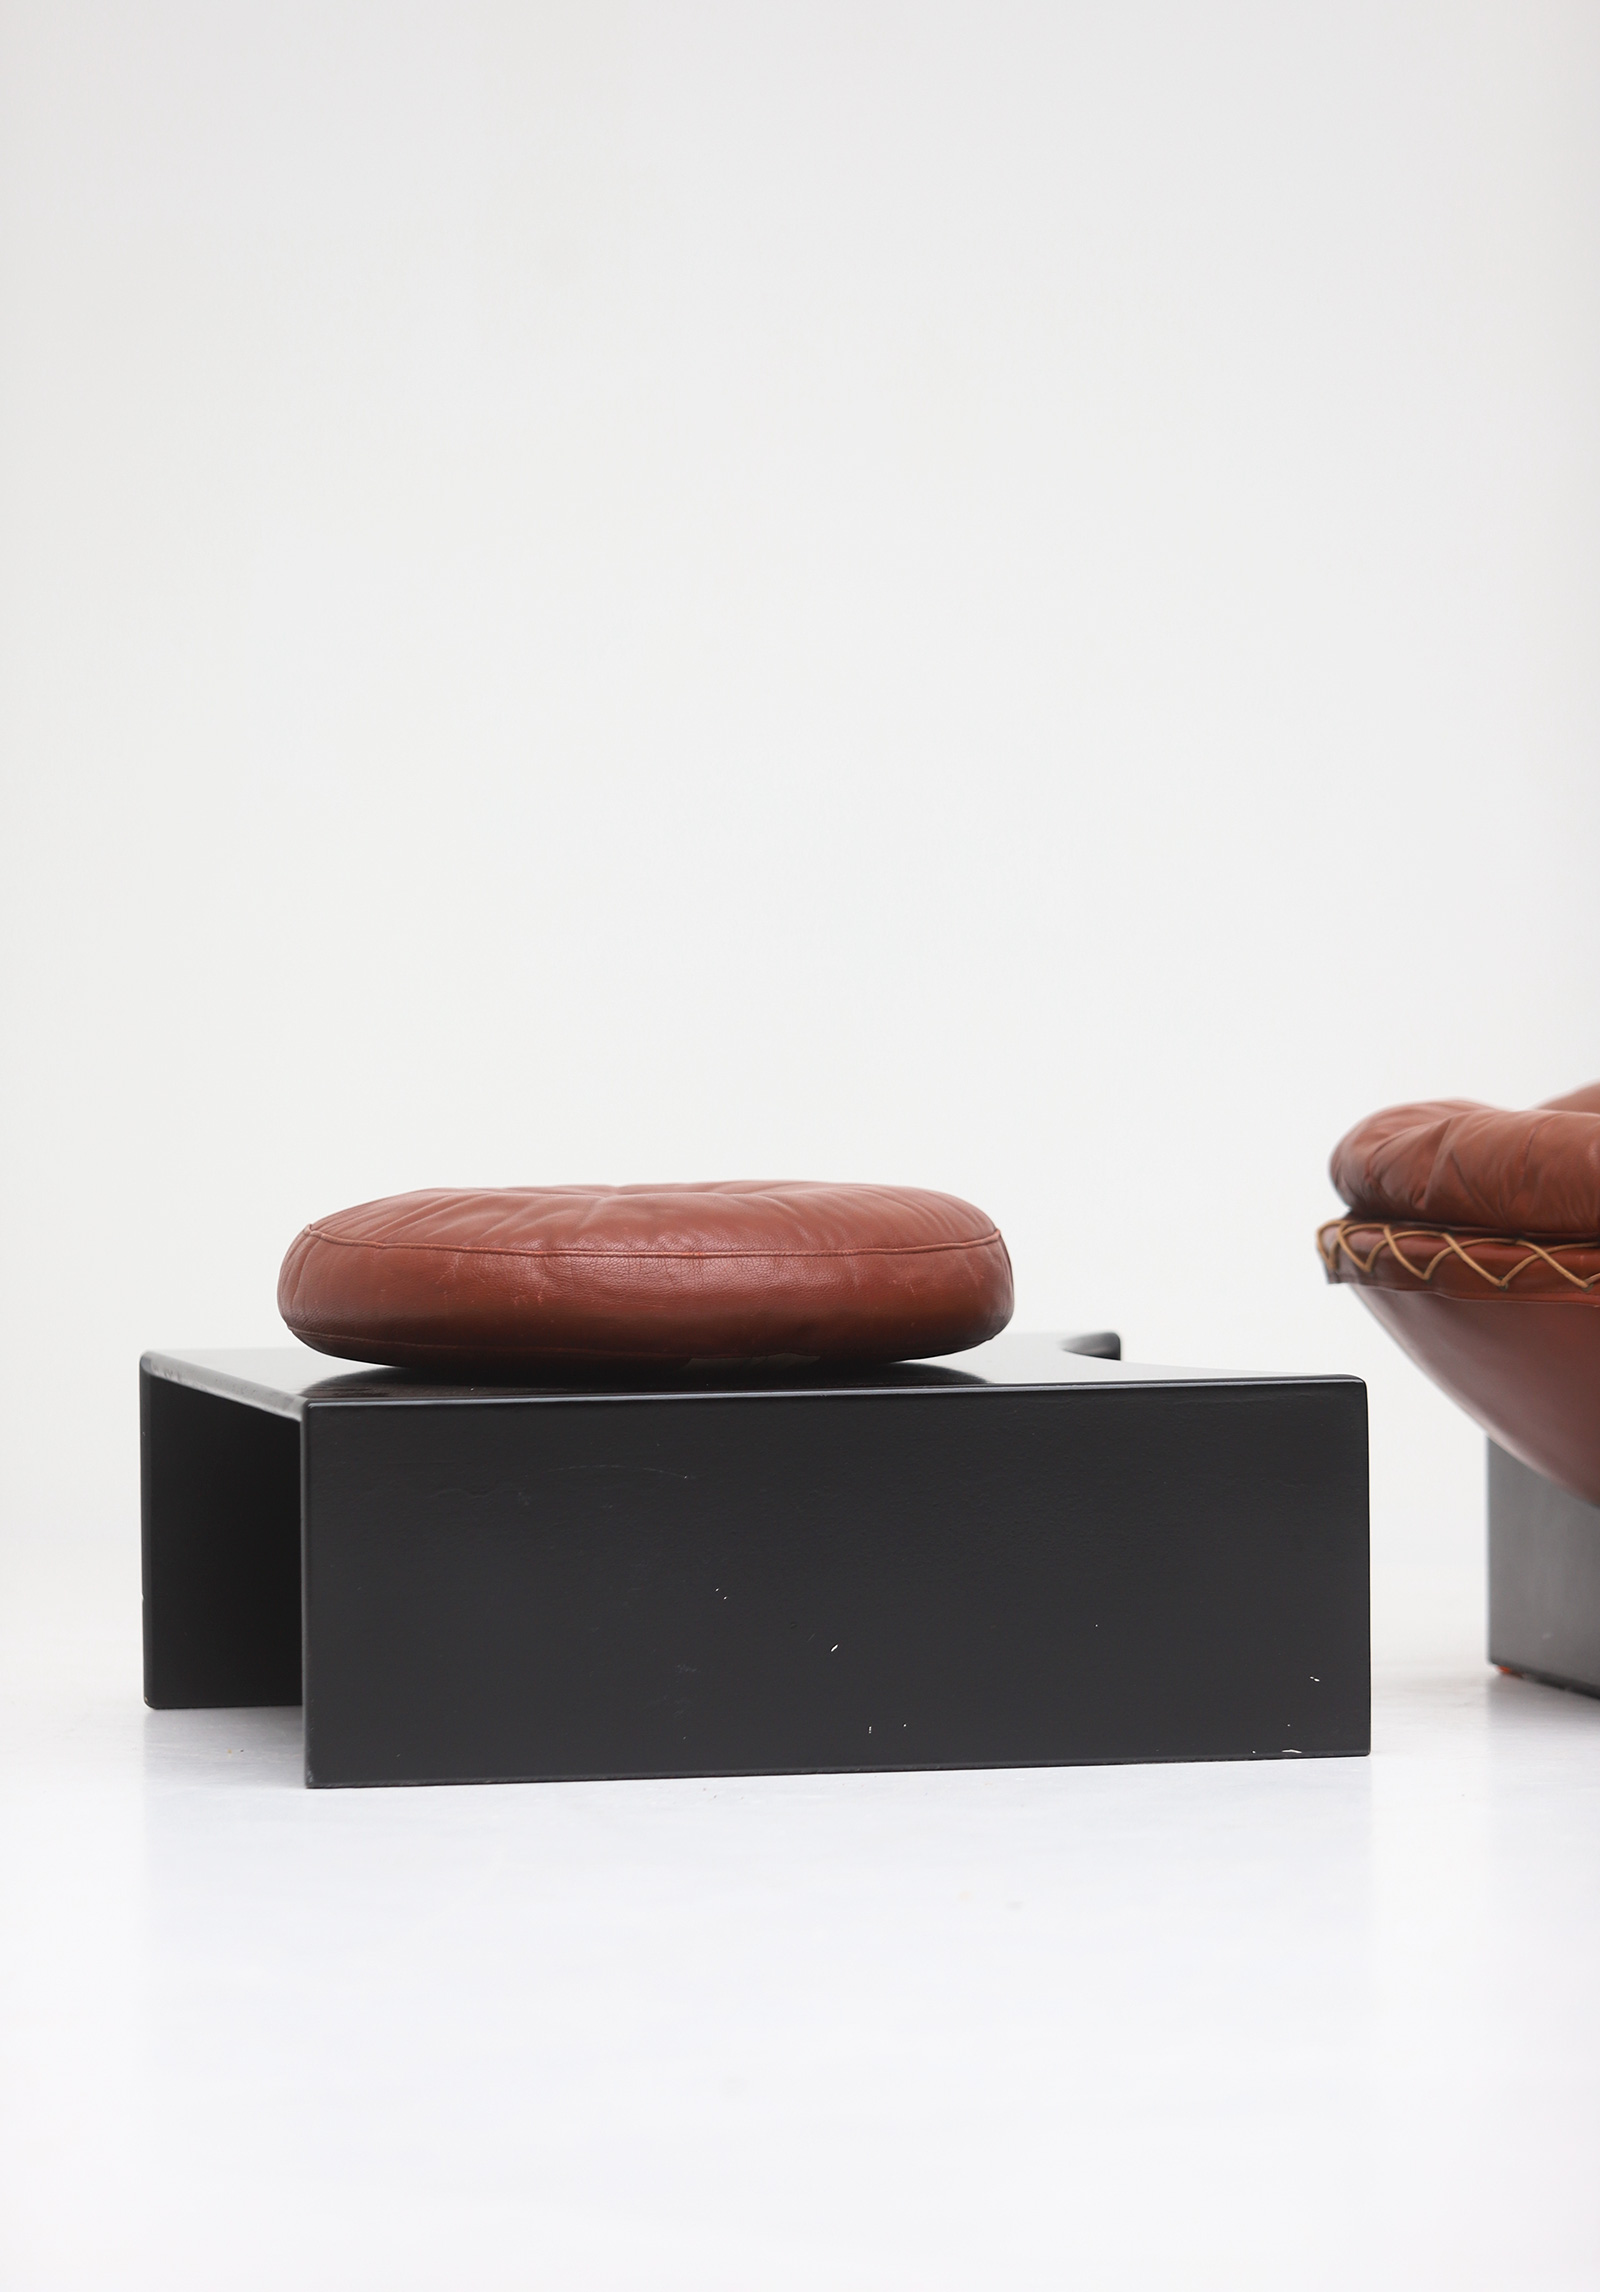 Leather Lounge Chairs by Illum Wikkelso for Ryesberg 1970simage 14